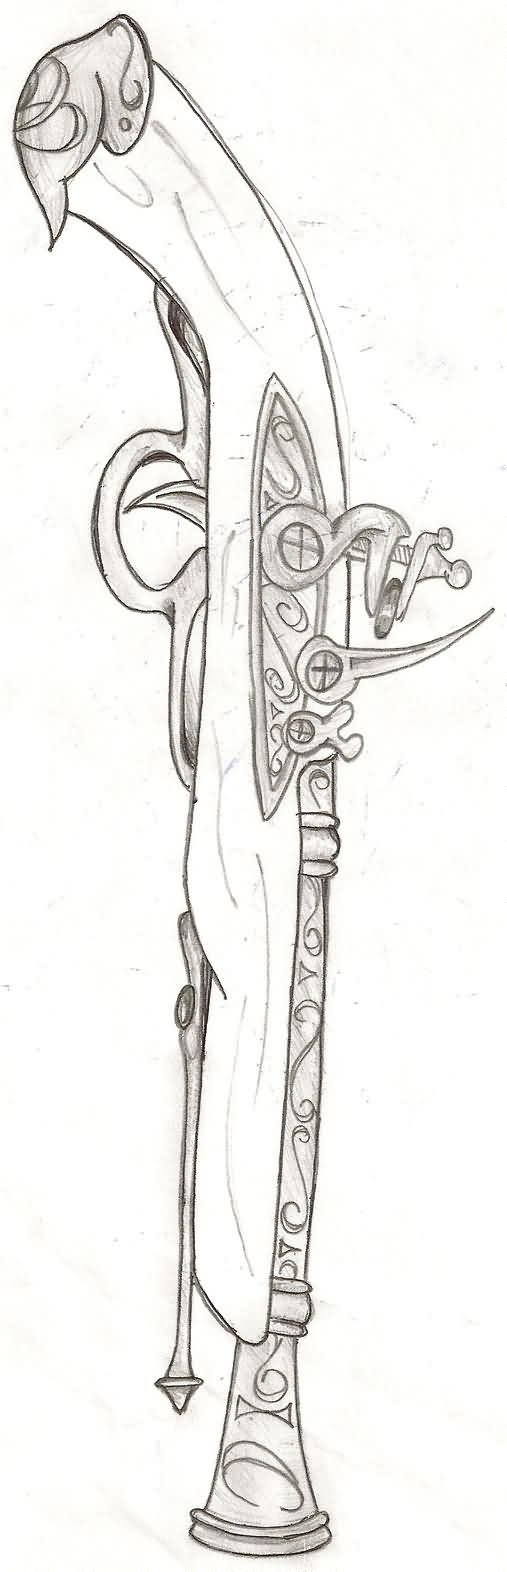 Flintlock Pistol Tattoo Sketch (2)